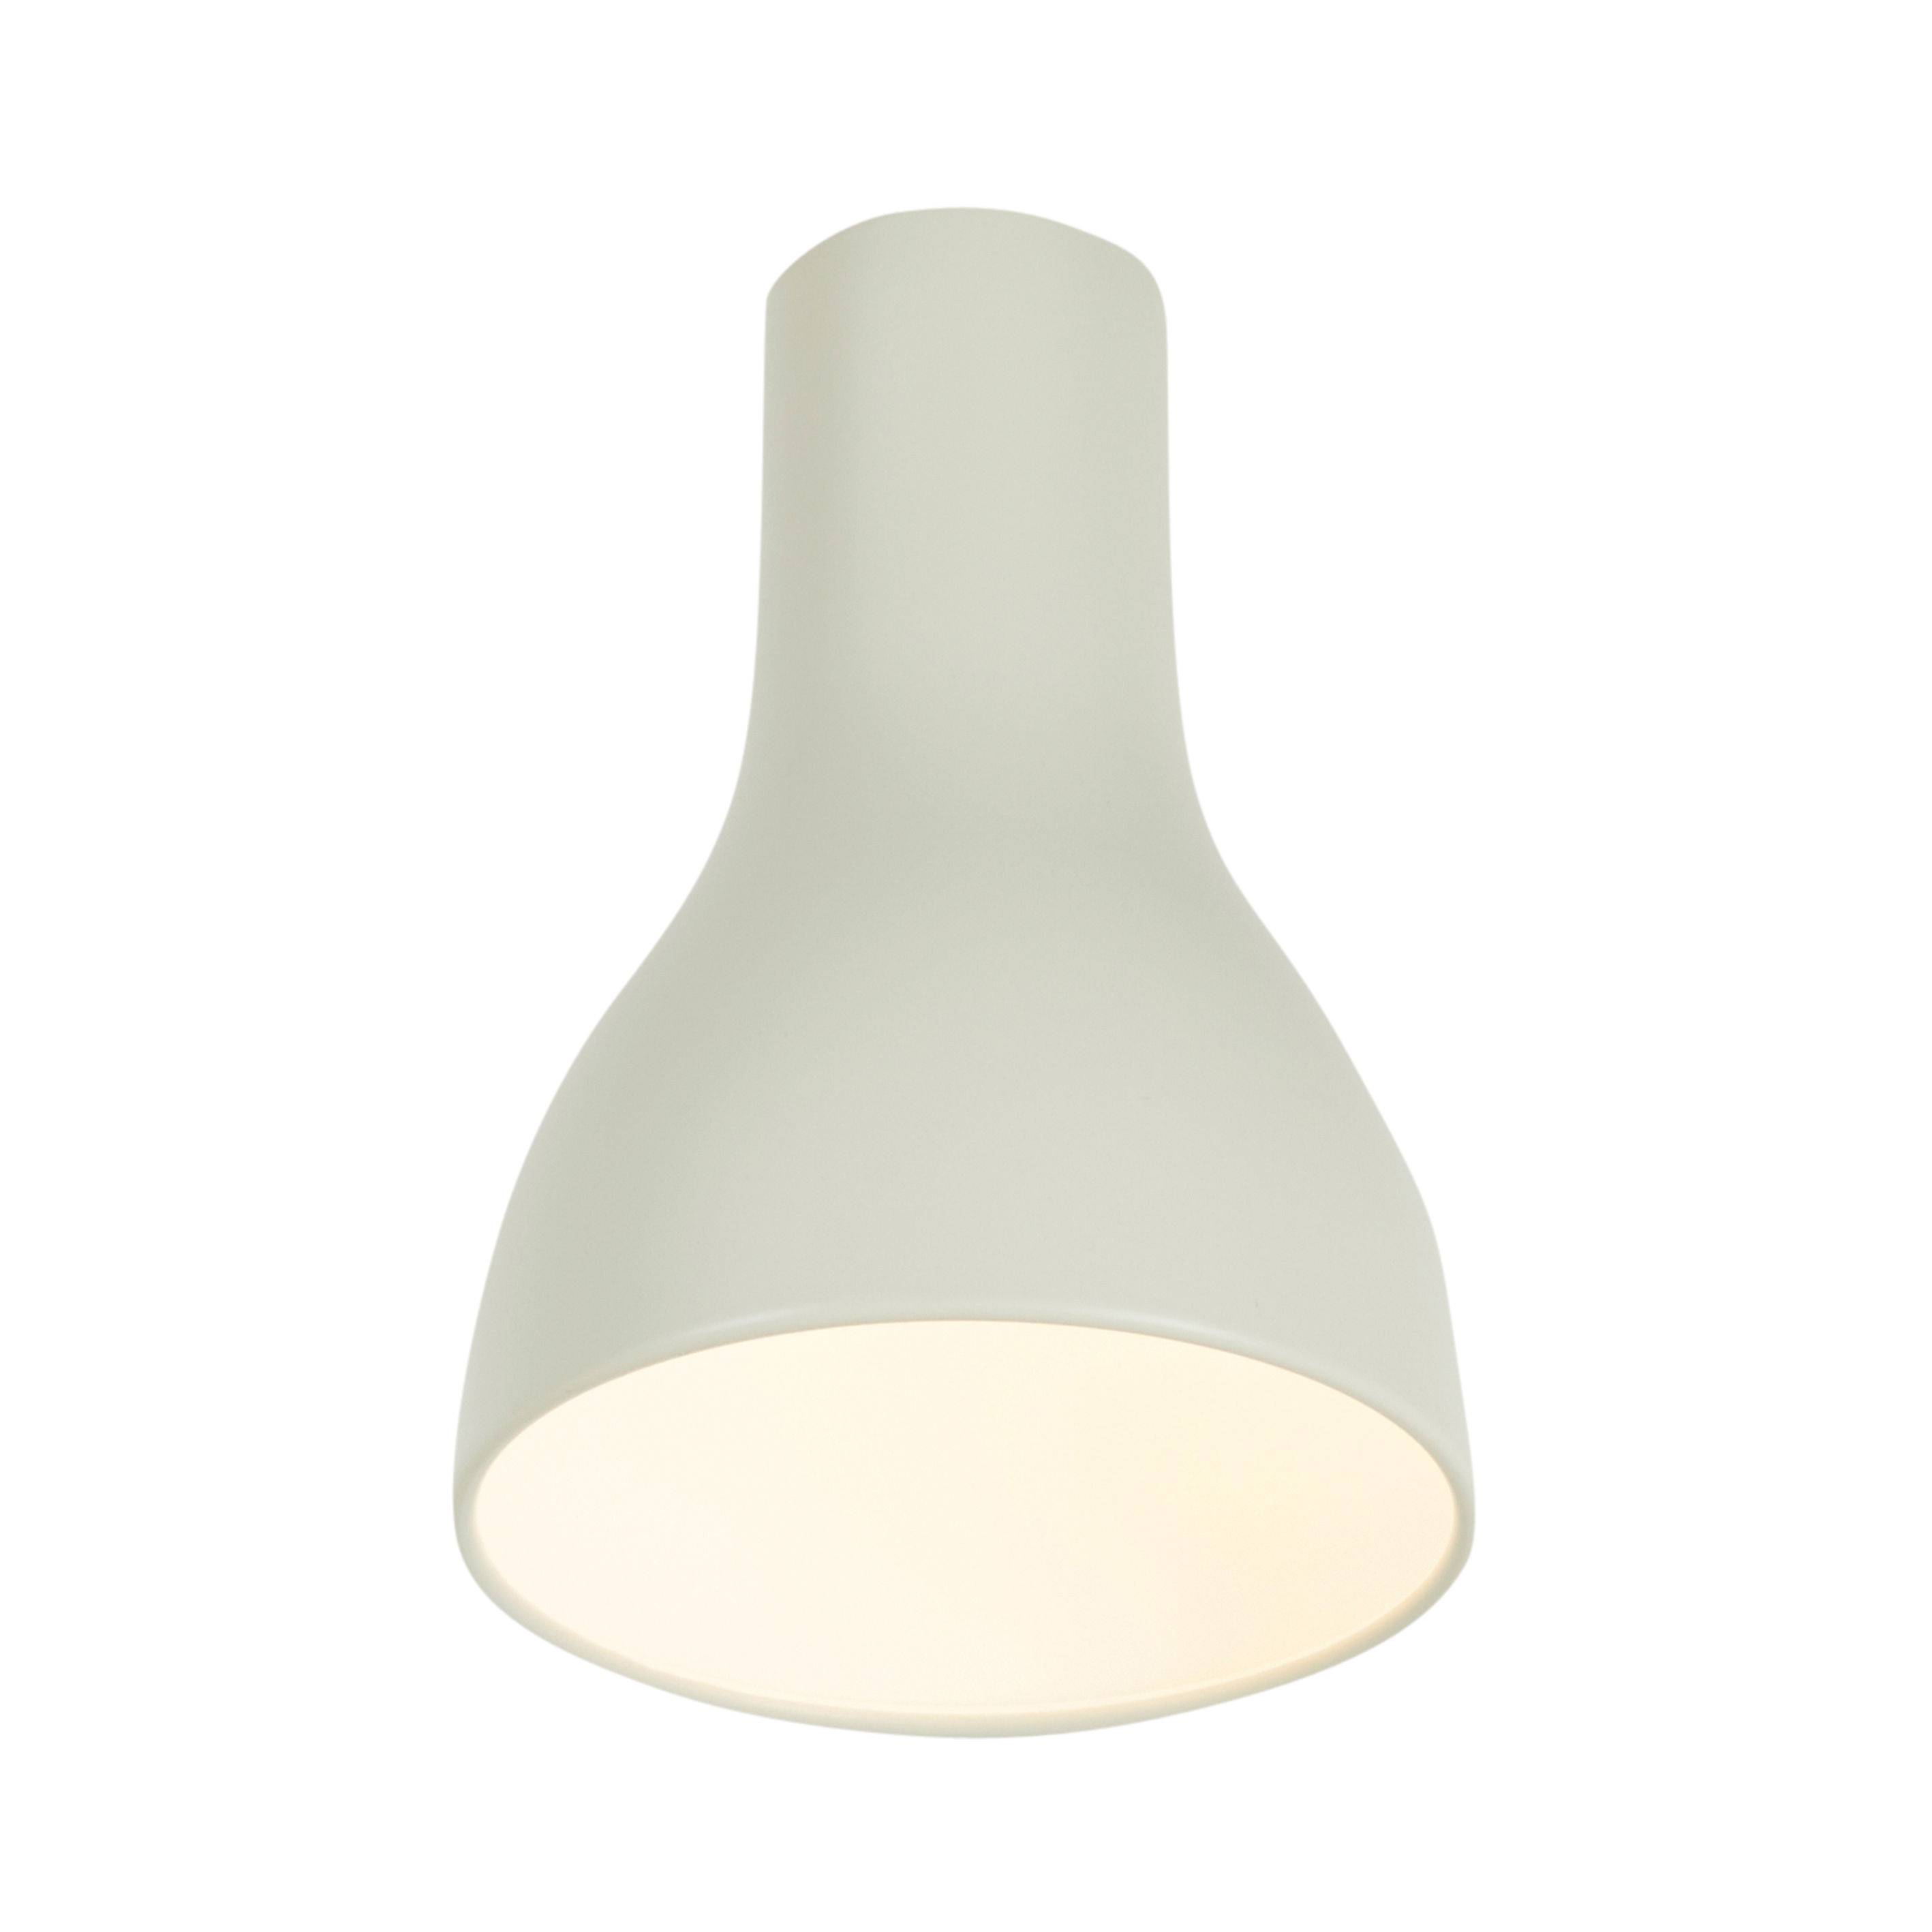 Type 75 Wall light White by Anglepoise